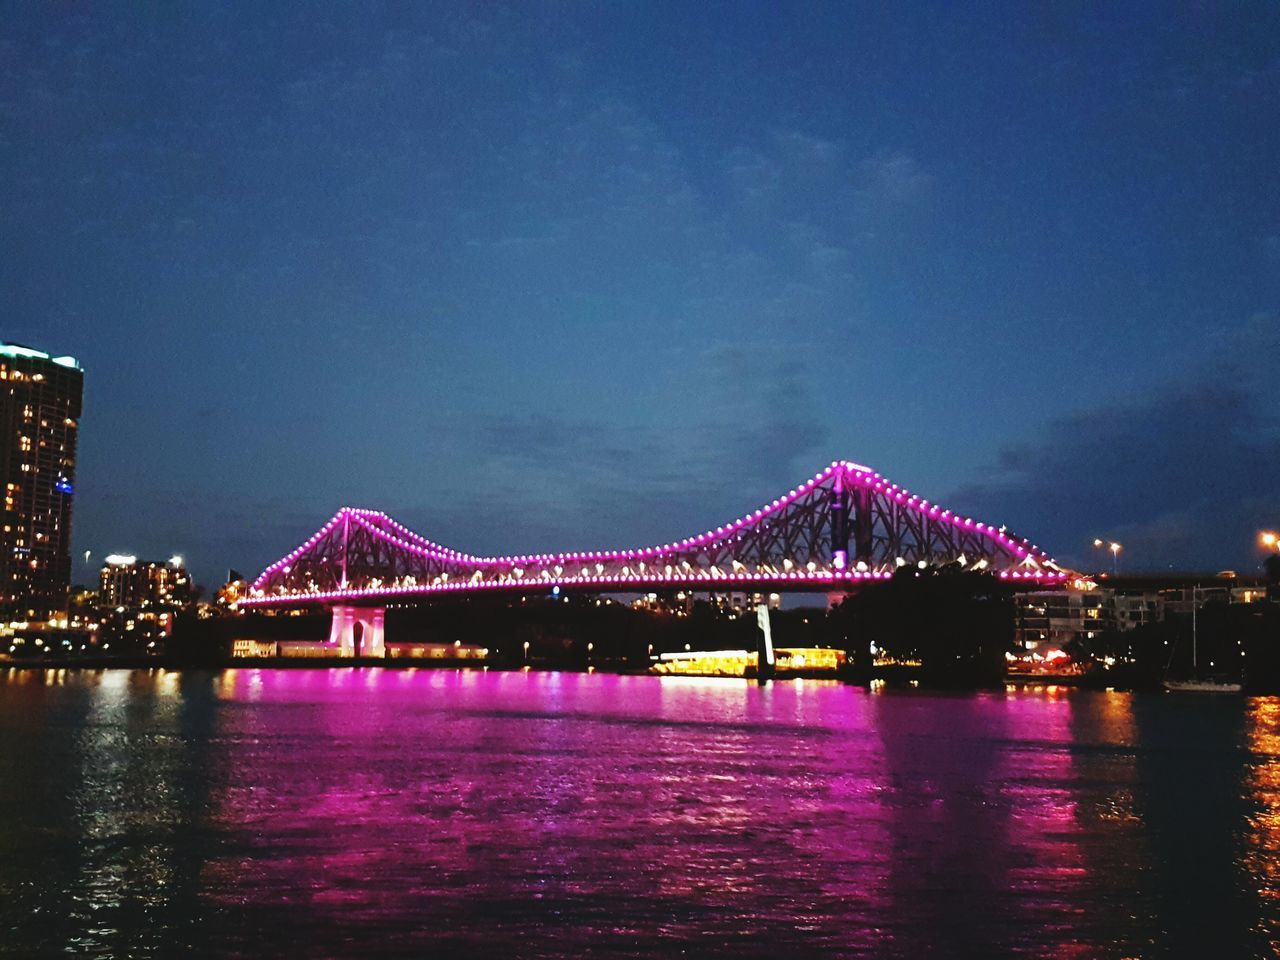 A relaxing night trip along the Brisbane river Bridge - Man Made Structure Storybridge Illuminated Water Architecture River Famous Place City Life Night Brisbane Australia Brisbane River